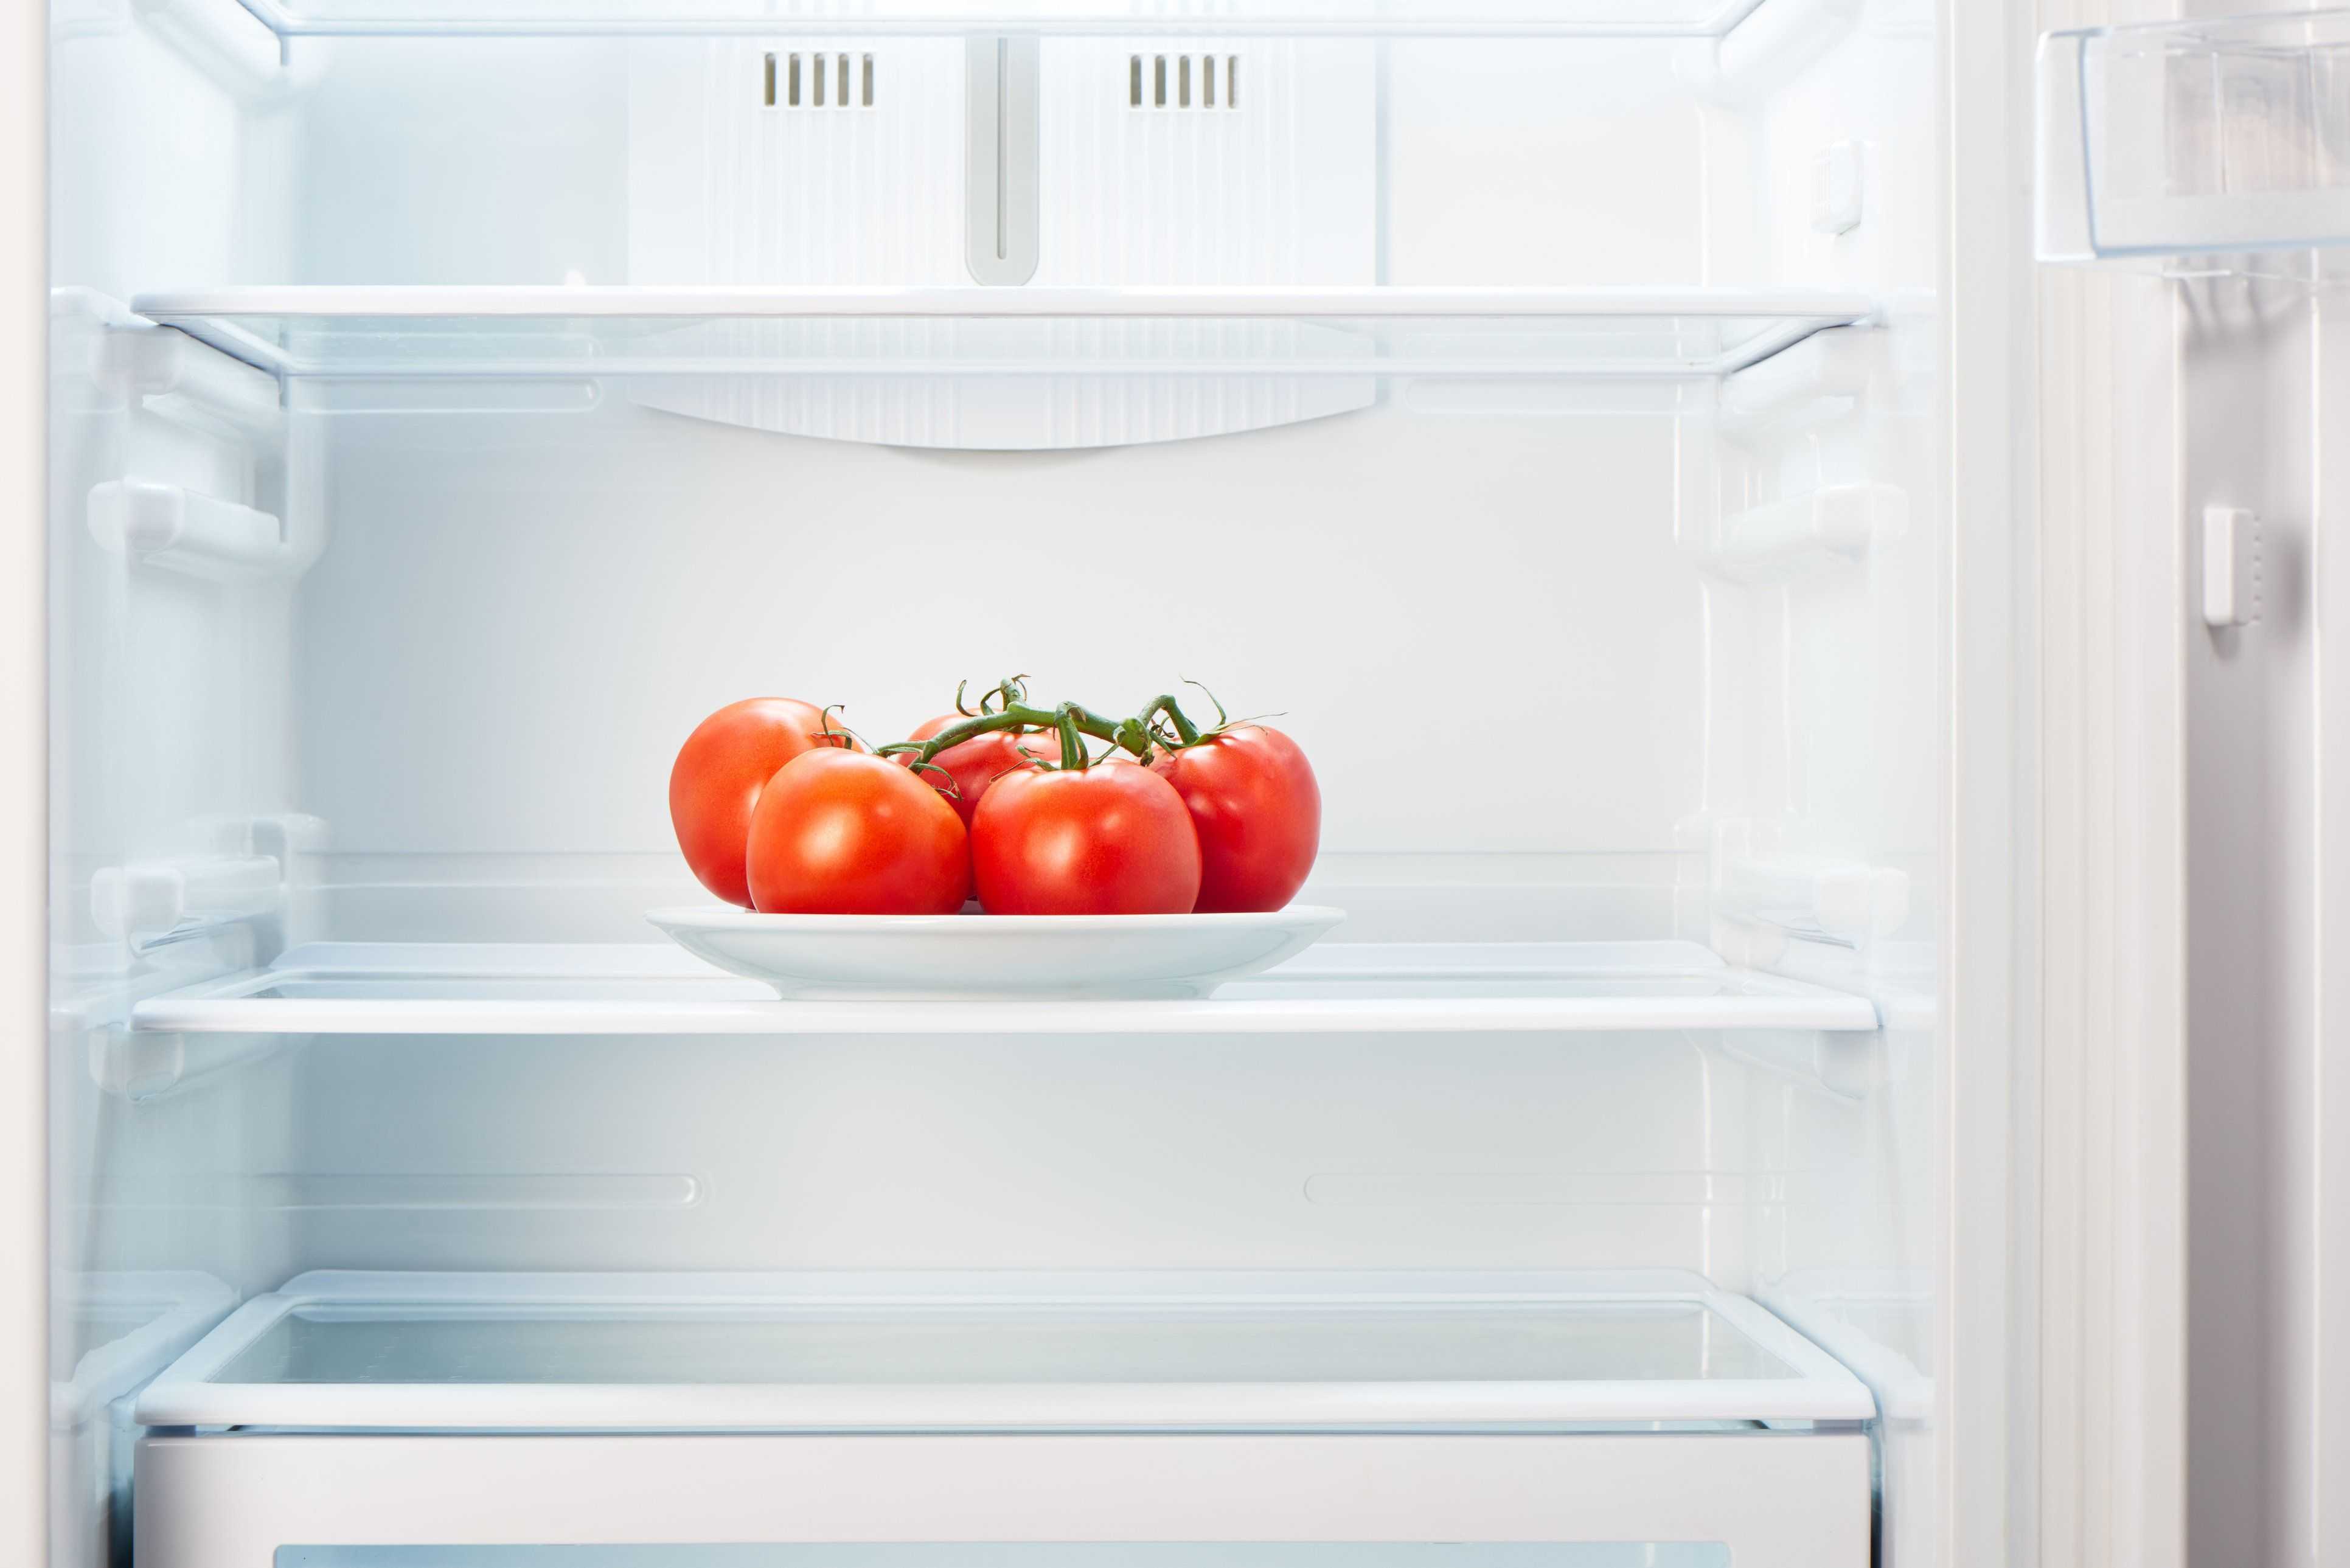 Putting Tomatoes In The Fridge Is Probably A Bad Idea, According To